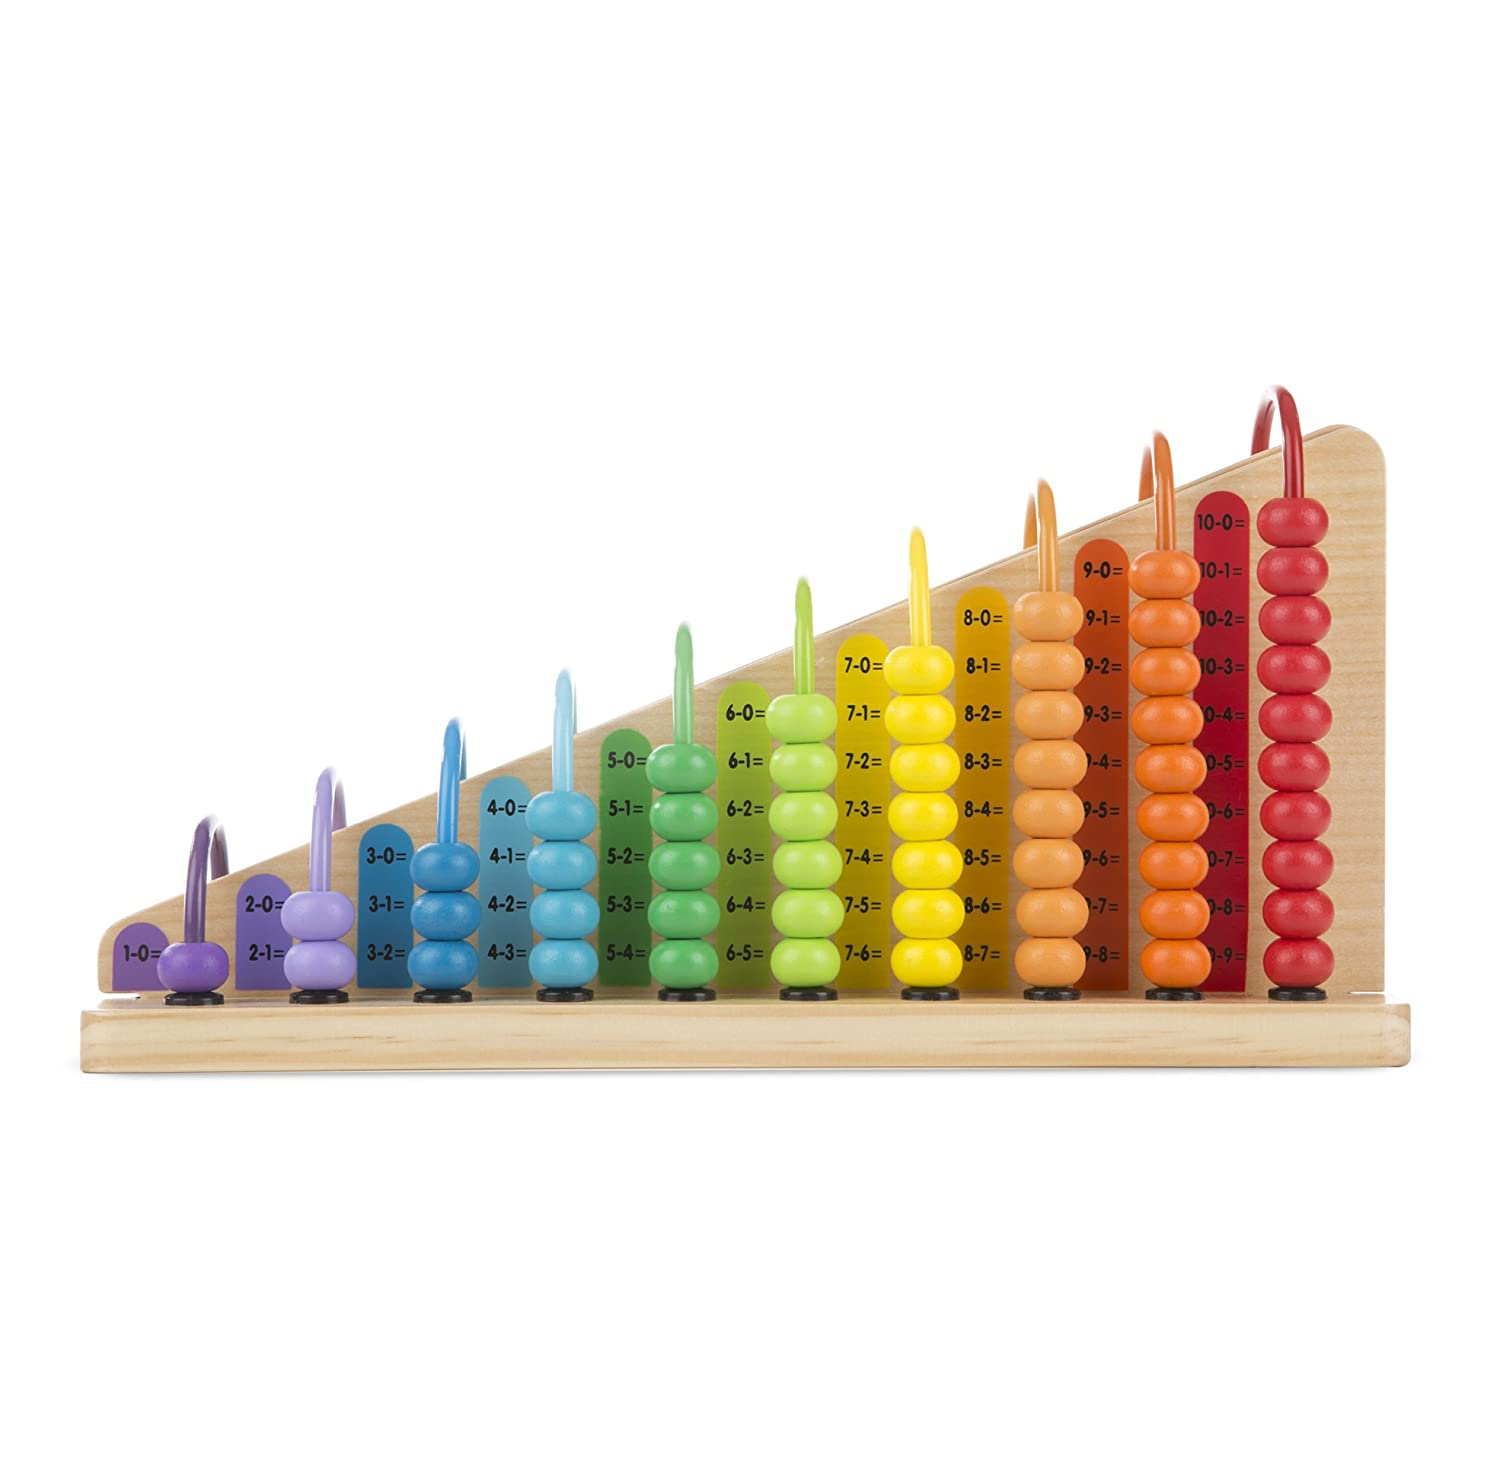 Melissa Doug Add Subtract Abacus Educational Toy With 55 Colorful Beads and Sturdy Wooden Construction